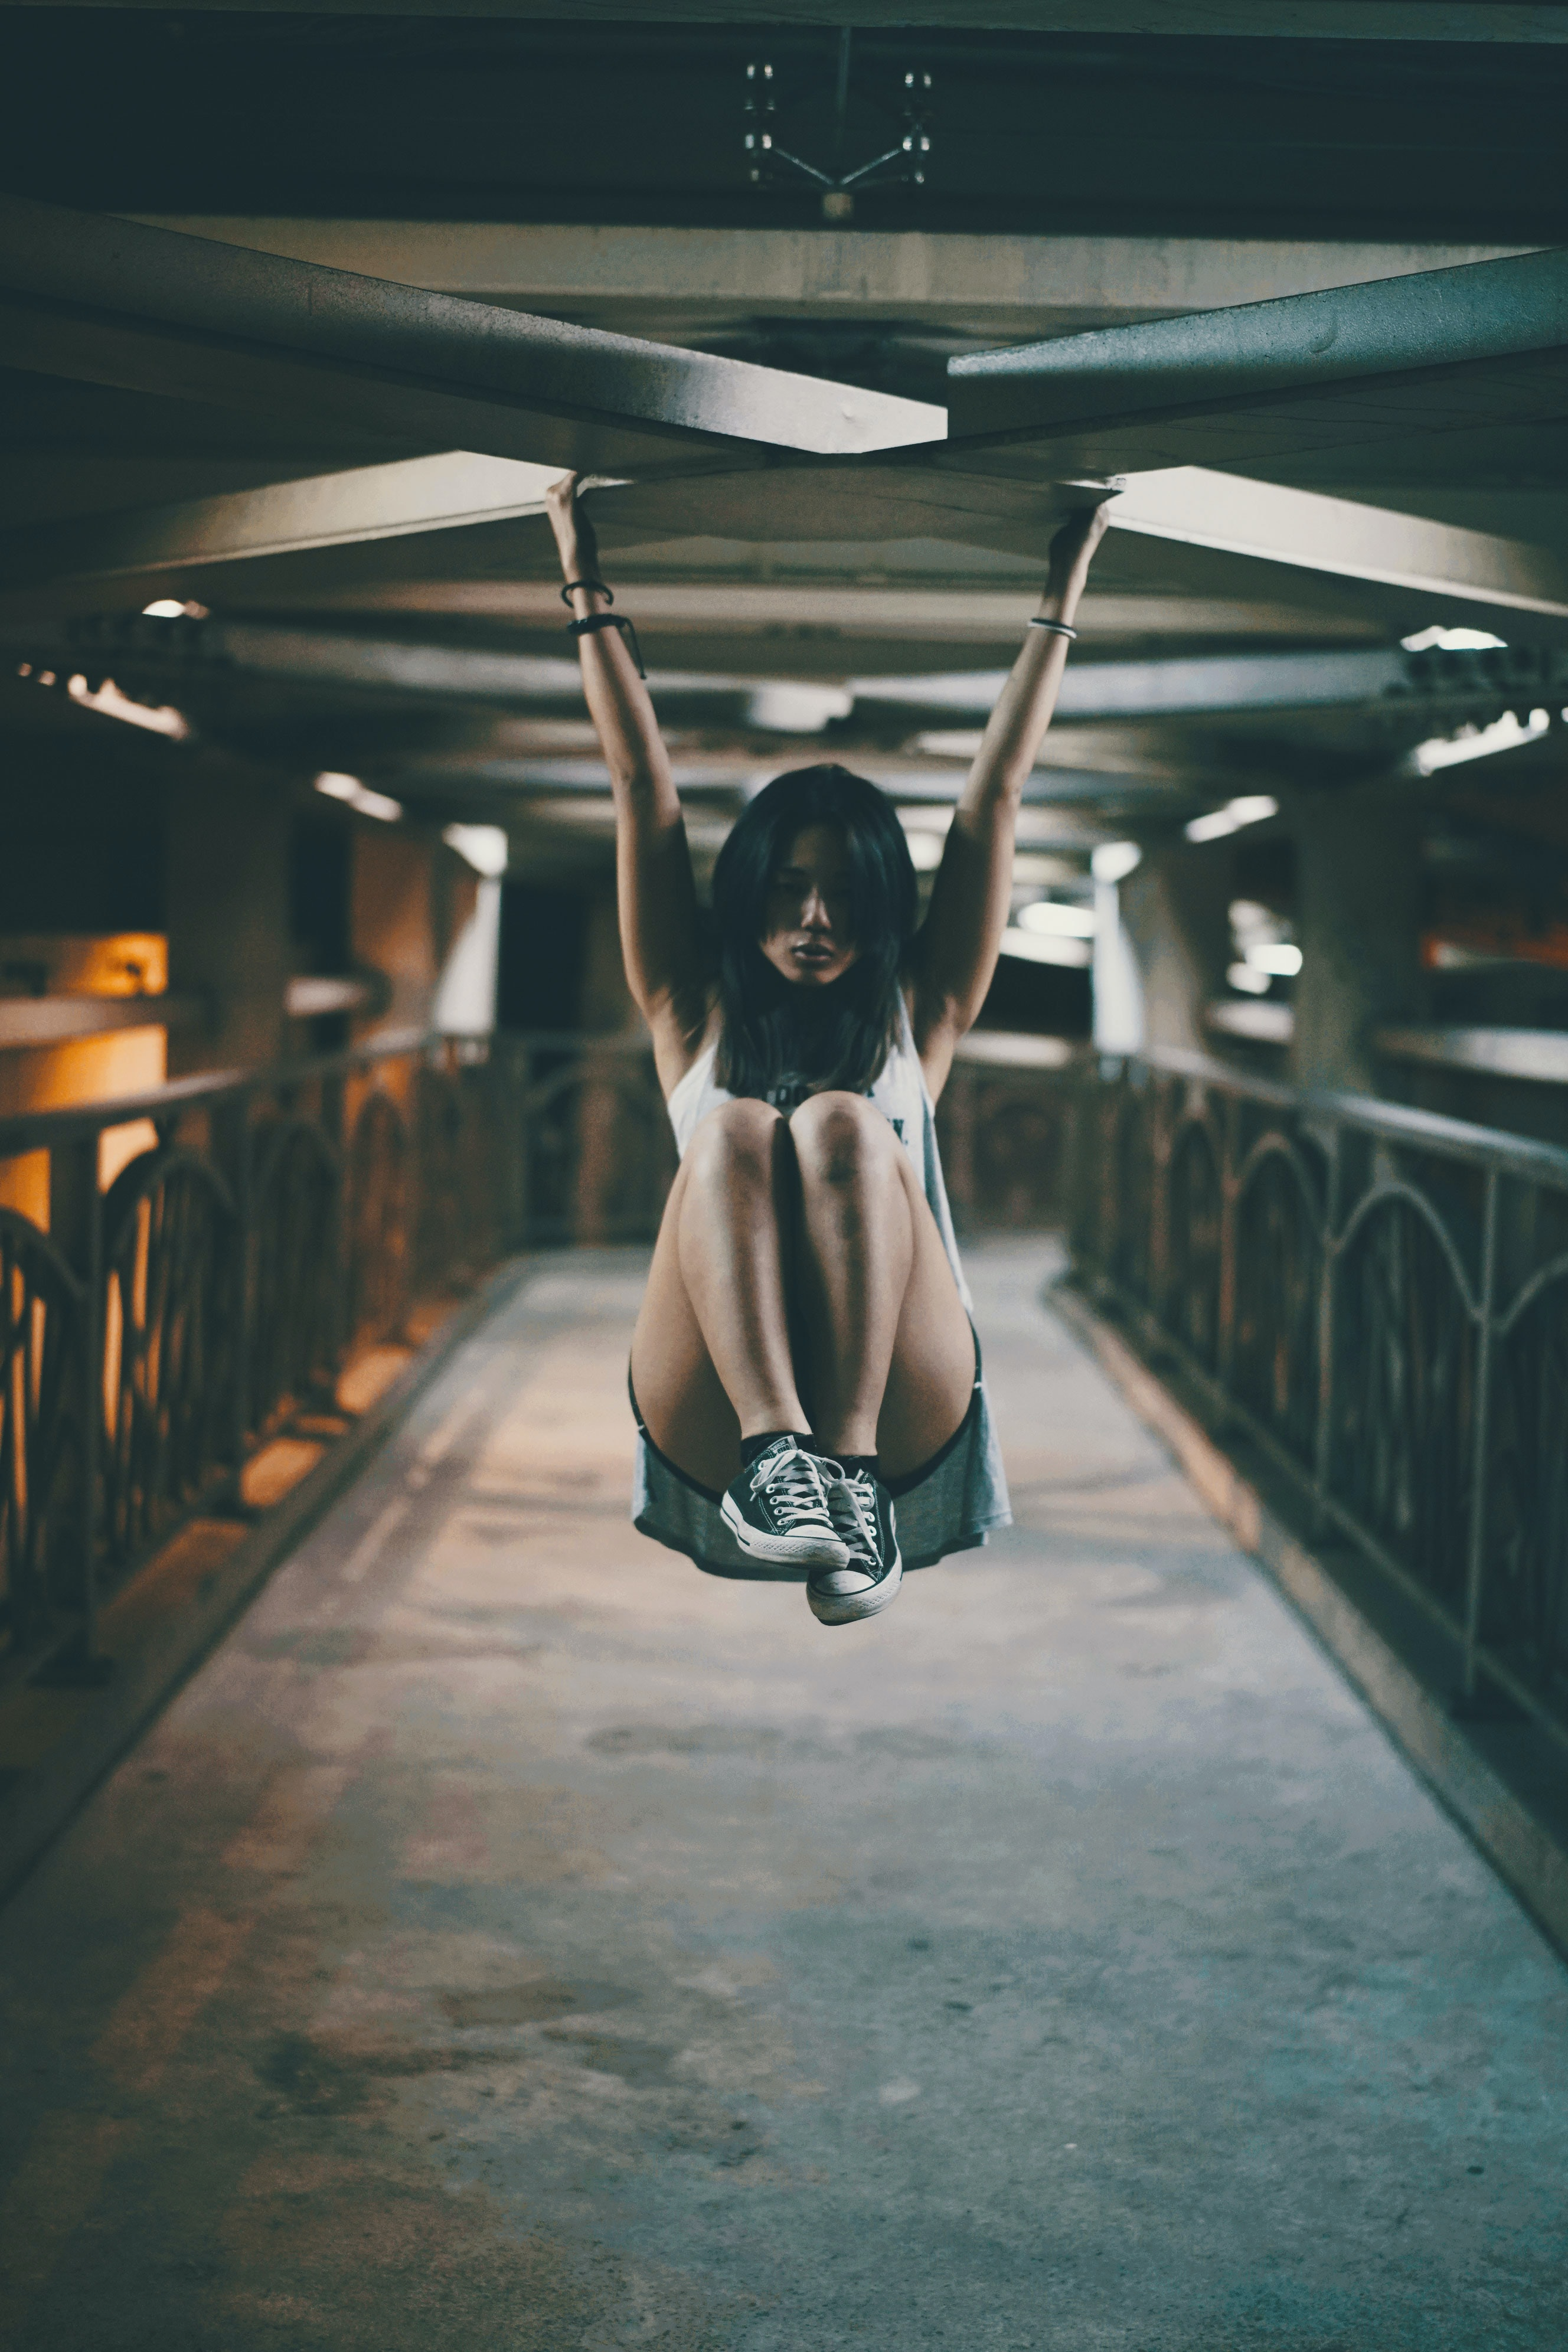 woman hanging on x shape ceiling